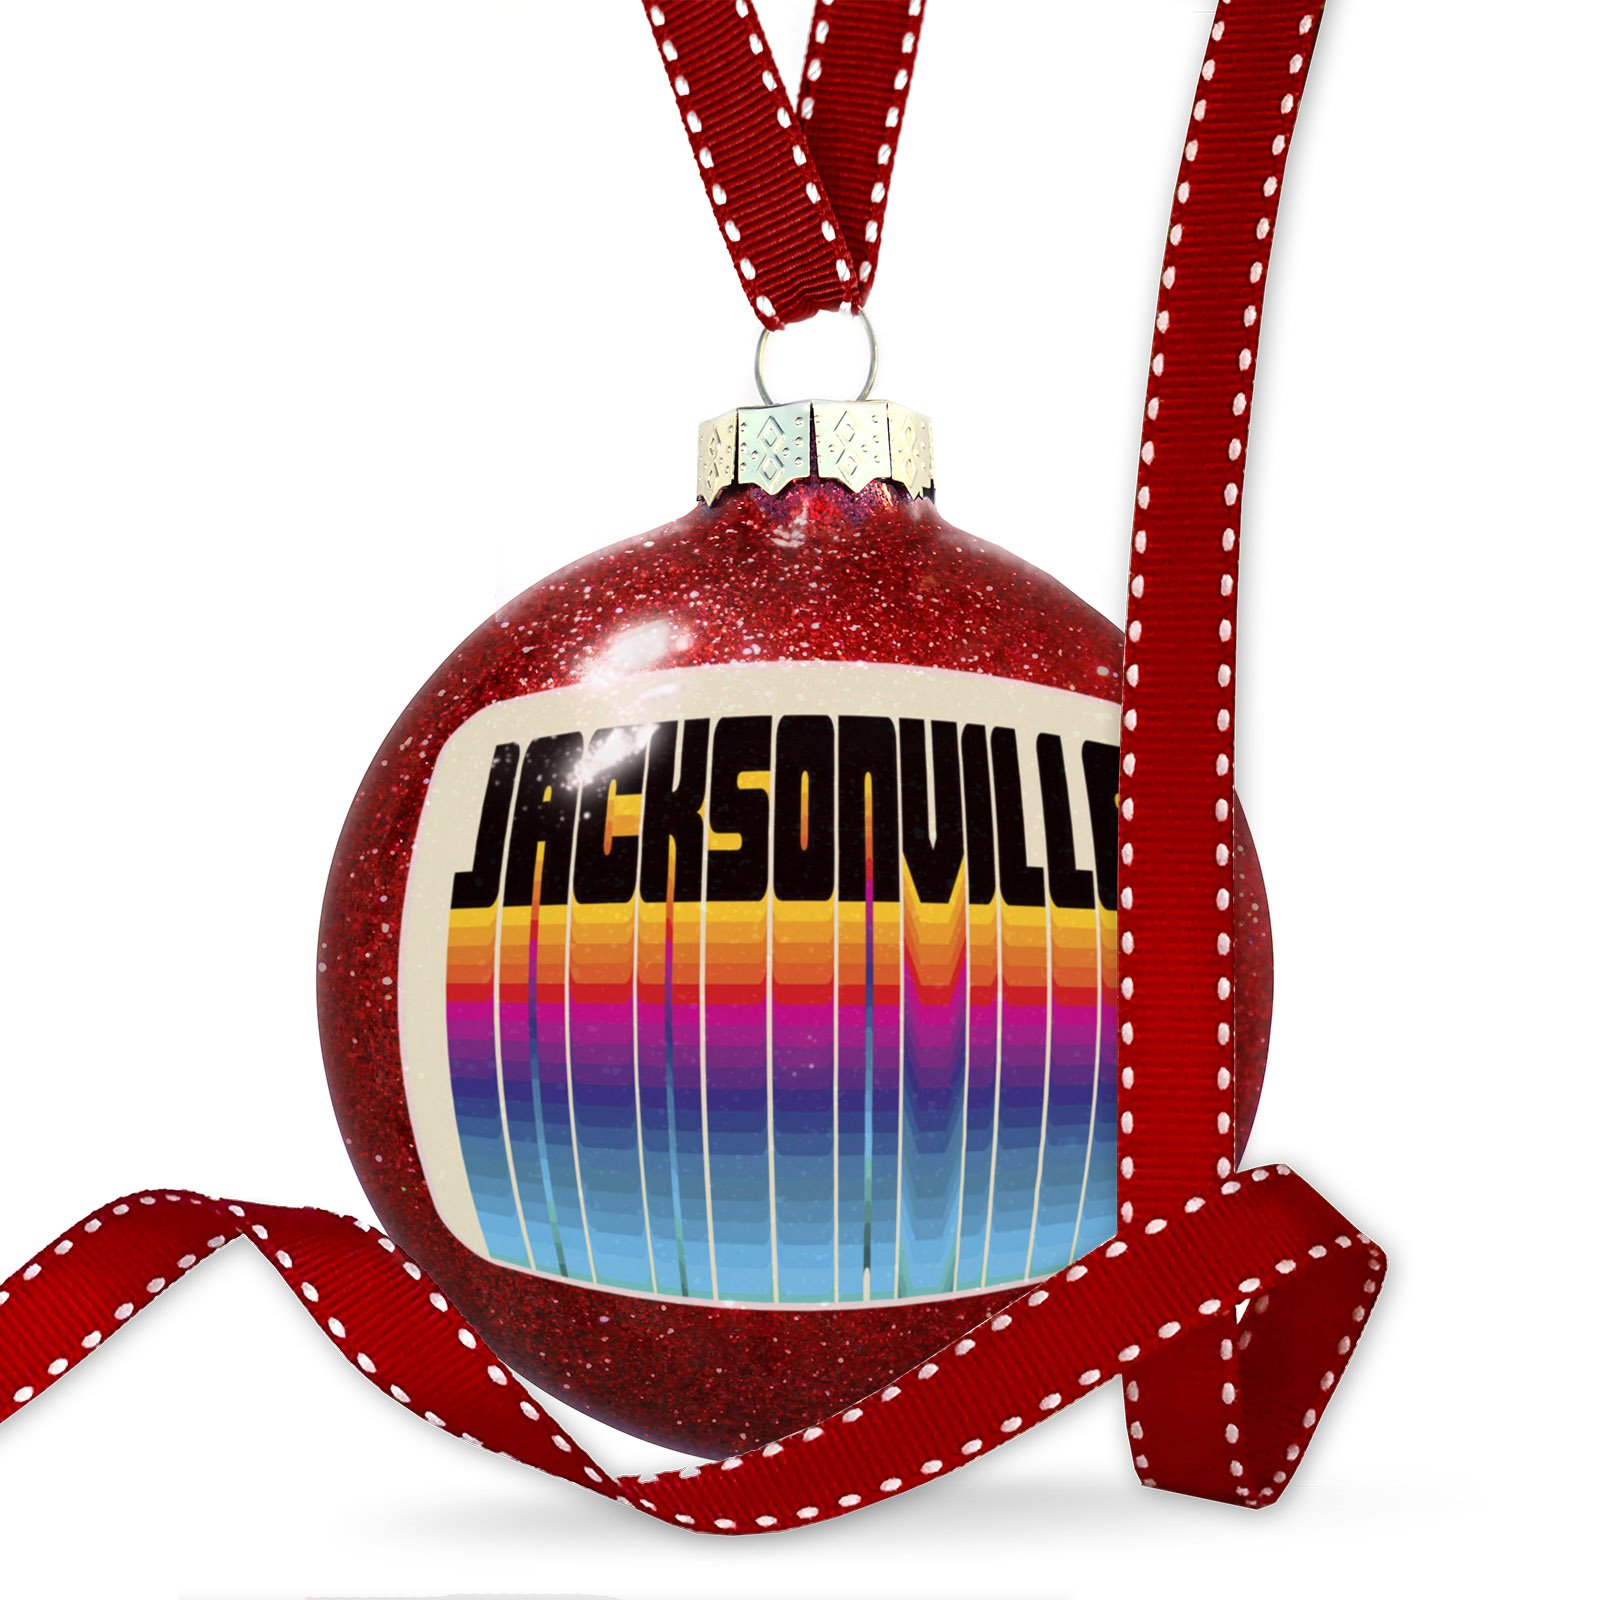 Christmas Decoration Retro Cites States Countries Jacksonville Ornament